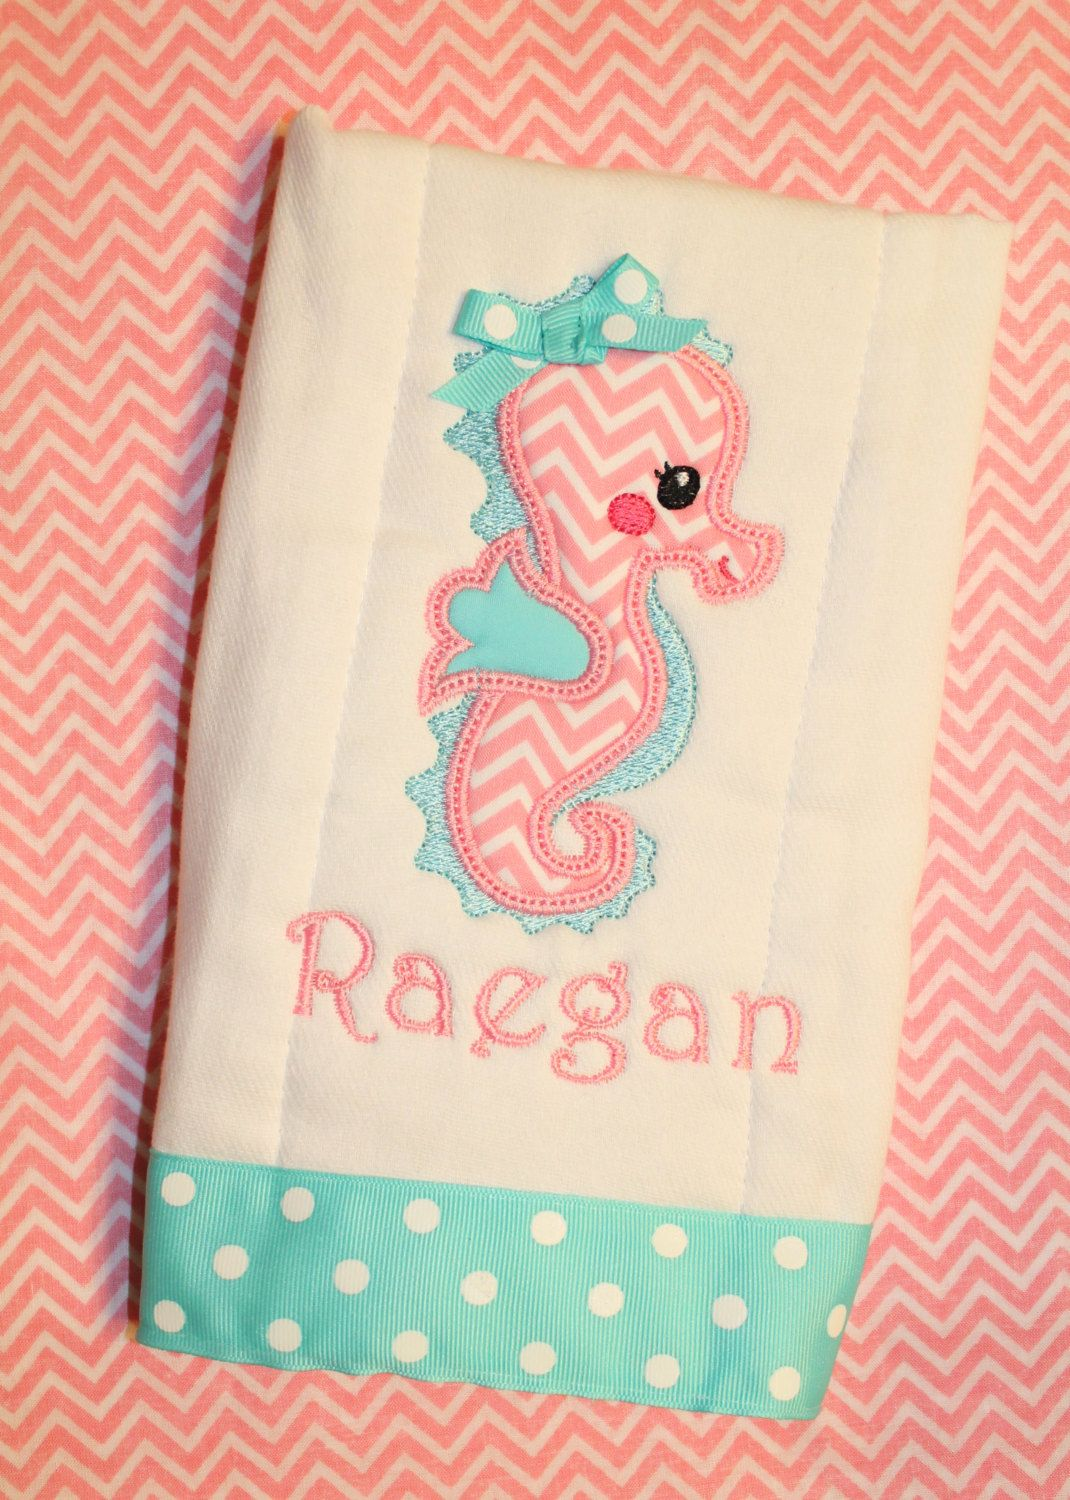 Light pink chevron seahorse burp cloth personalized with name light pink chevron seahorse burp cloth personalized with name seahorse monogram girl baby shower baby gift custom pink burp rag nautical personalized aqua negle Images